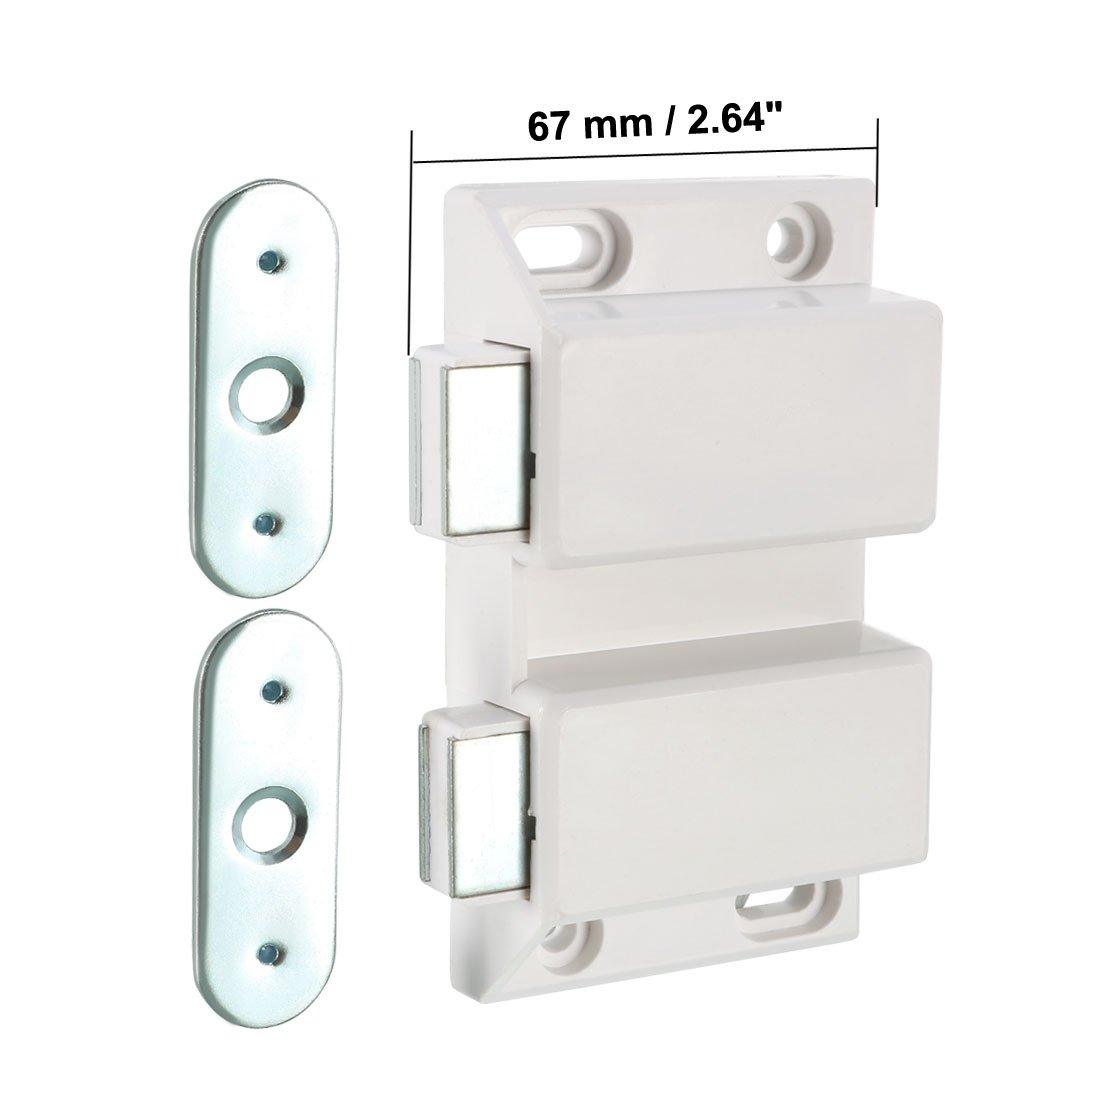 uxcell Double Magnetic Touch Press Catch Latch Plastic White for Cabinet Door Shutter 5Pcs by uxcell (Image #3)